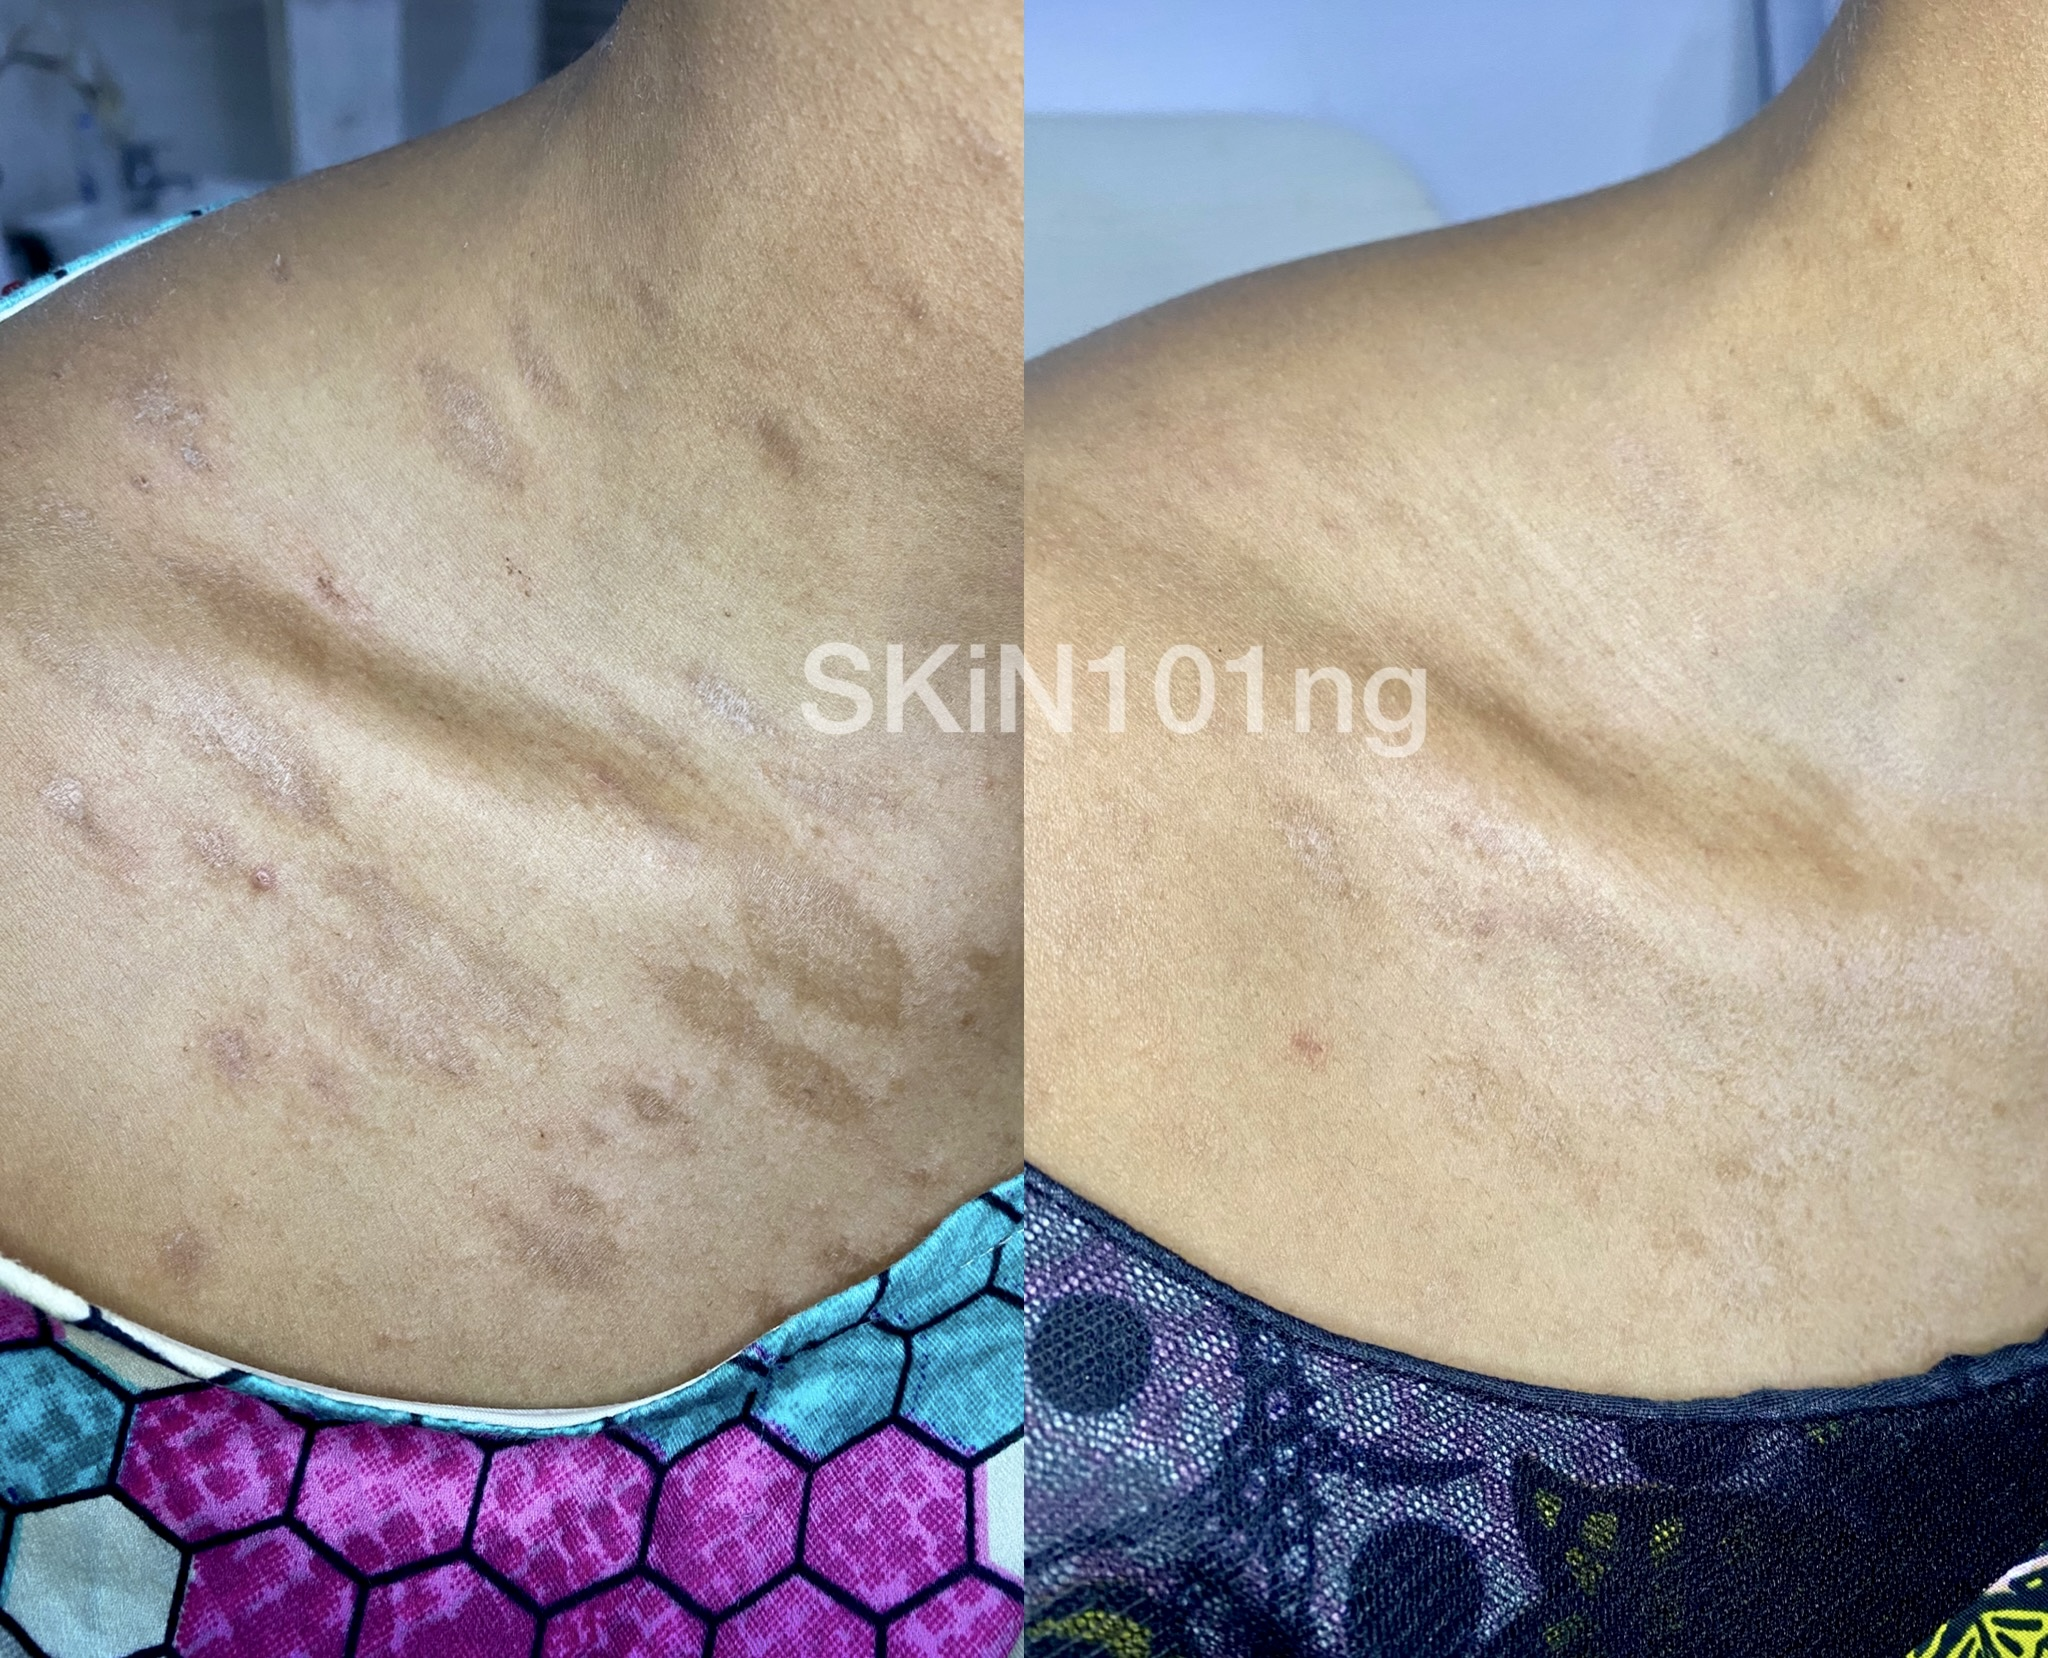 Pityriasis Rosea Before and After Two weeks of treatment